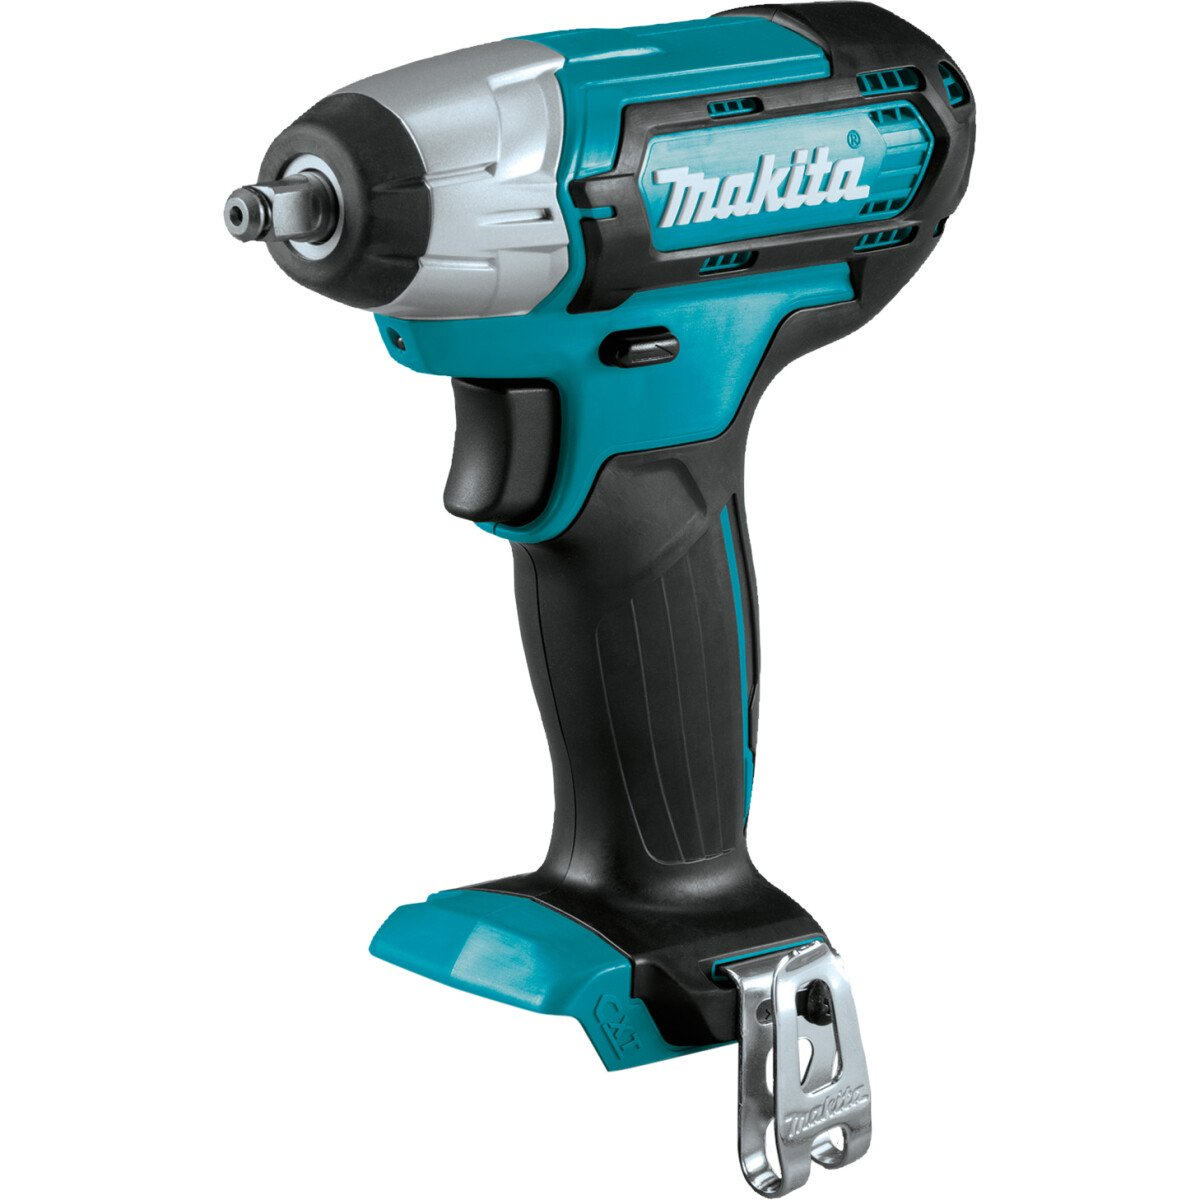 Makita TW140DZ Body Only 12V Max Impact Wrench CXT